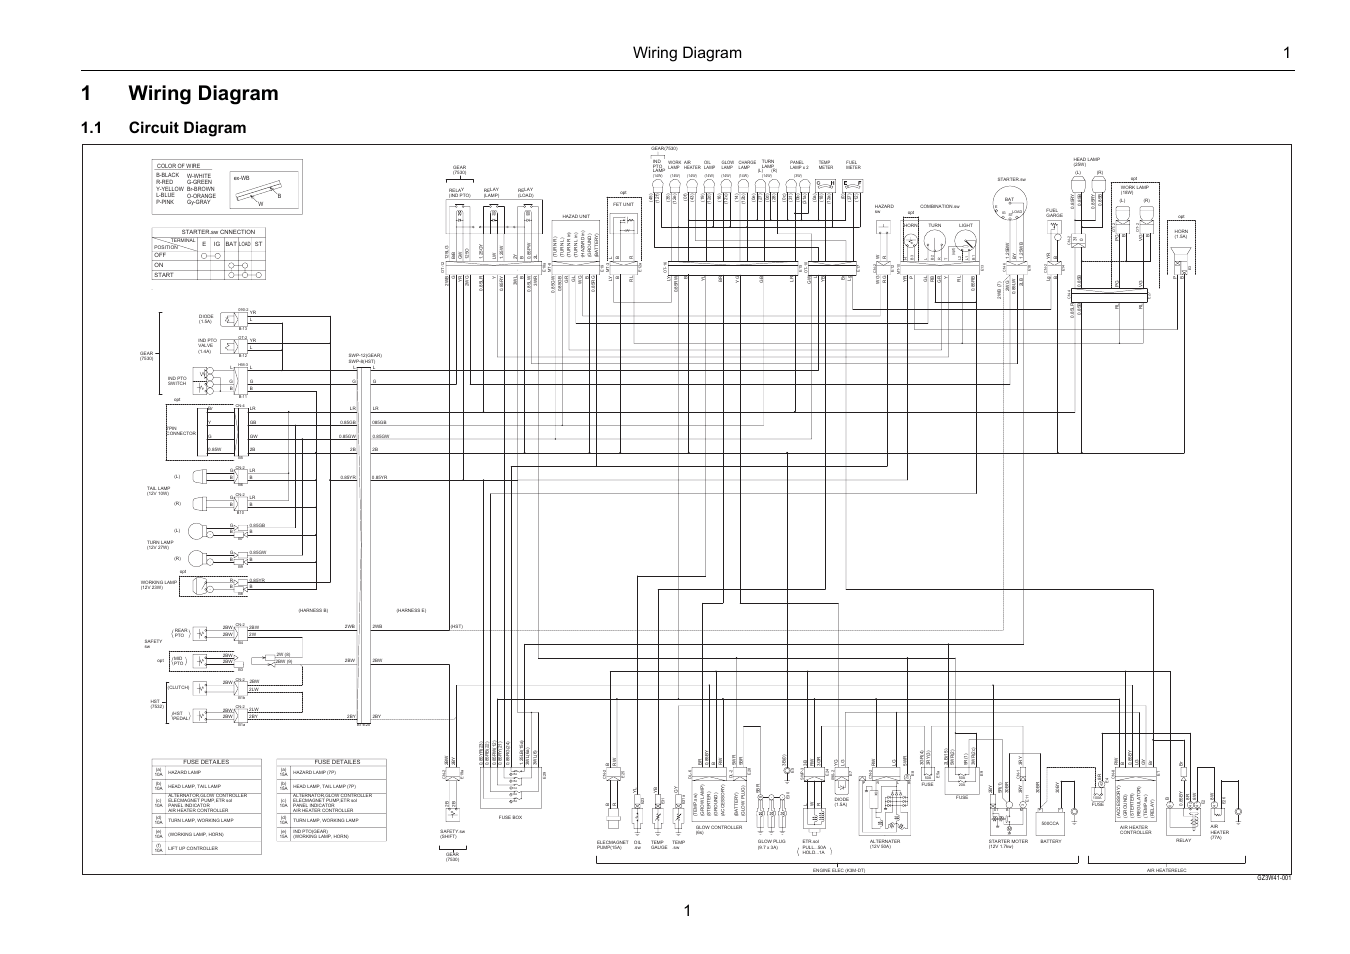 1wiring Diagram Wiring Diagram 1 1 1 Circuit Diagram